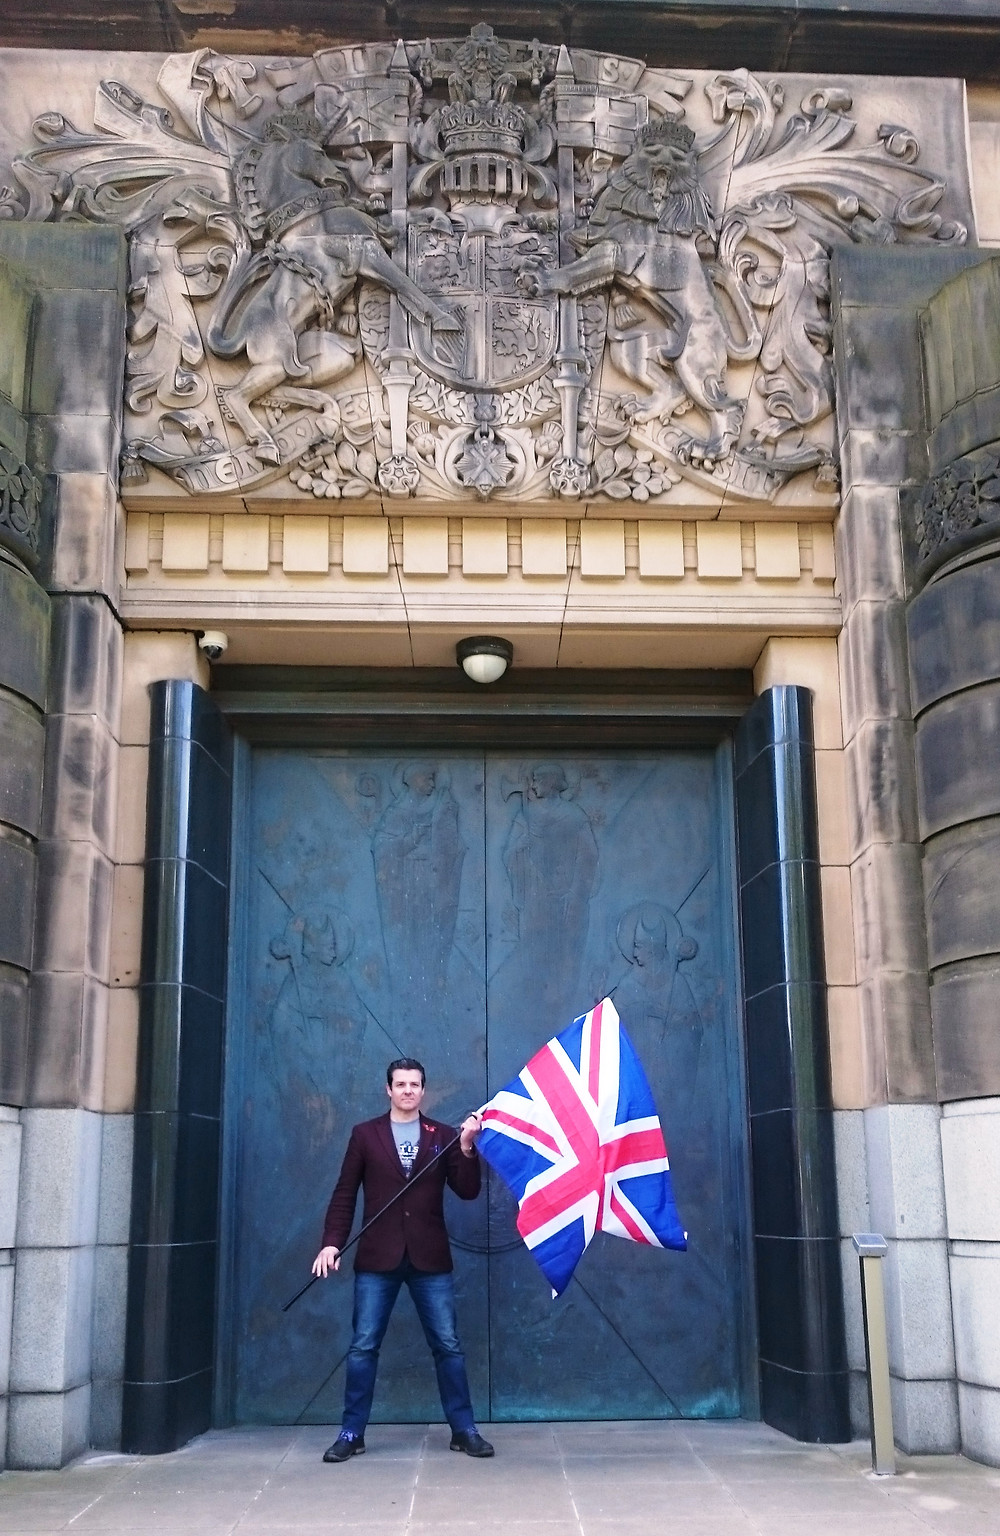 AFFG Director, Alistair McConnachie outside the amazing entrance of the former Scottish Office. Pic AFFG 23-4-17.